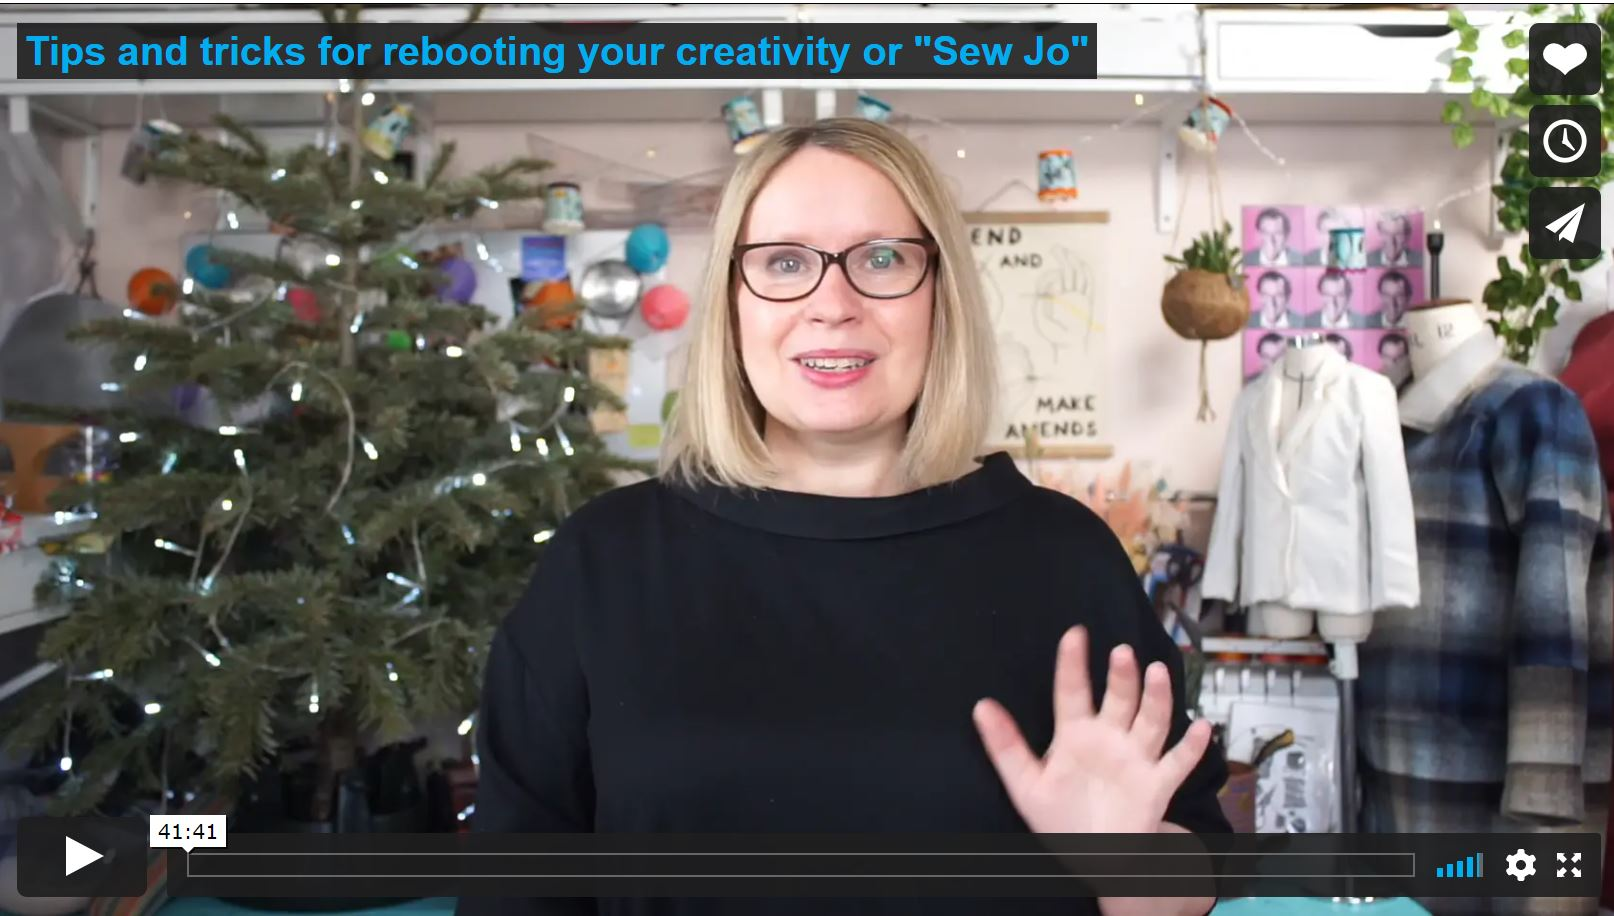 """Tips and tricks to reboot your creativity or """"Sew-Jo"""""""